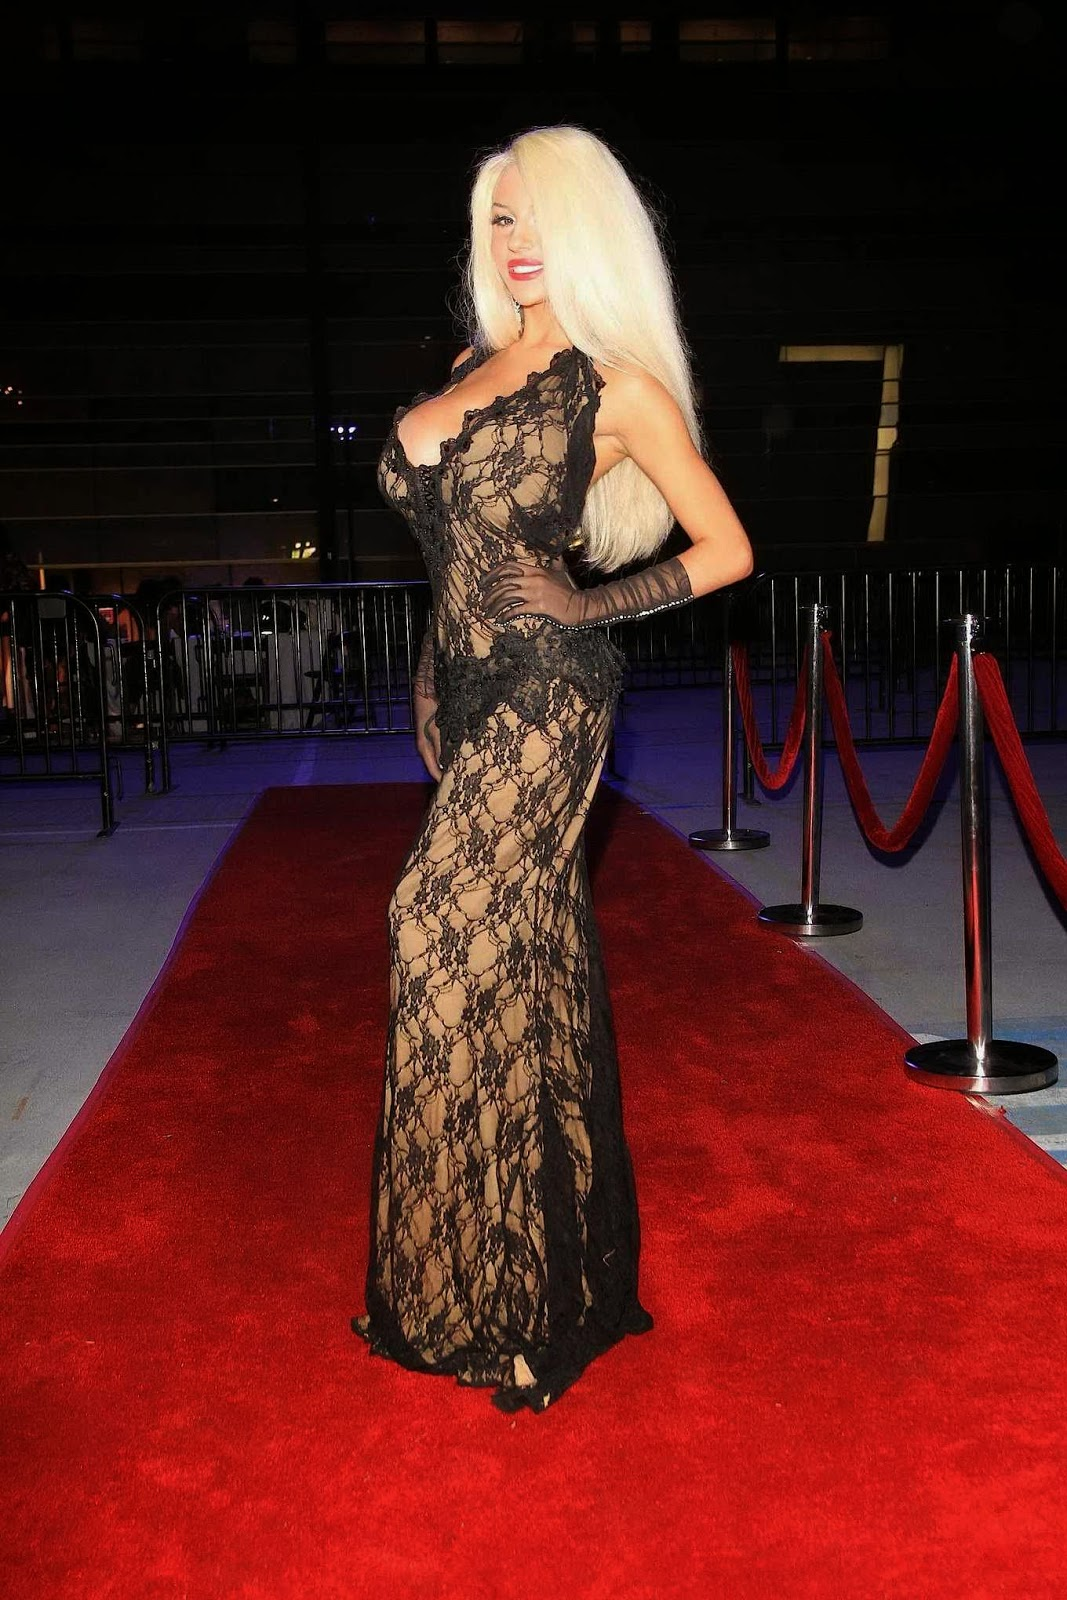 Courtney Stodden braless wearing black low cut lace dress 2014 Style Fashion Show Party in Los Angeles